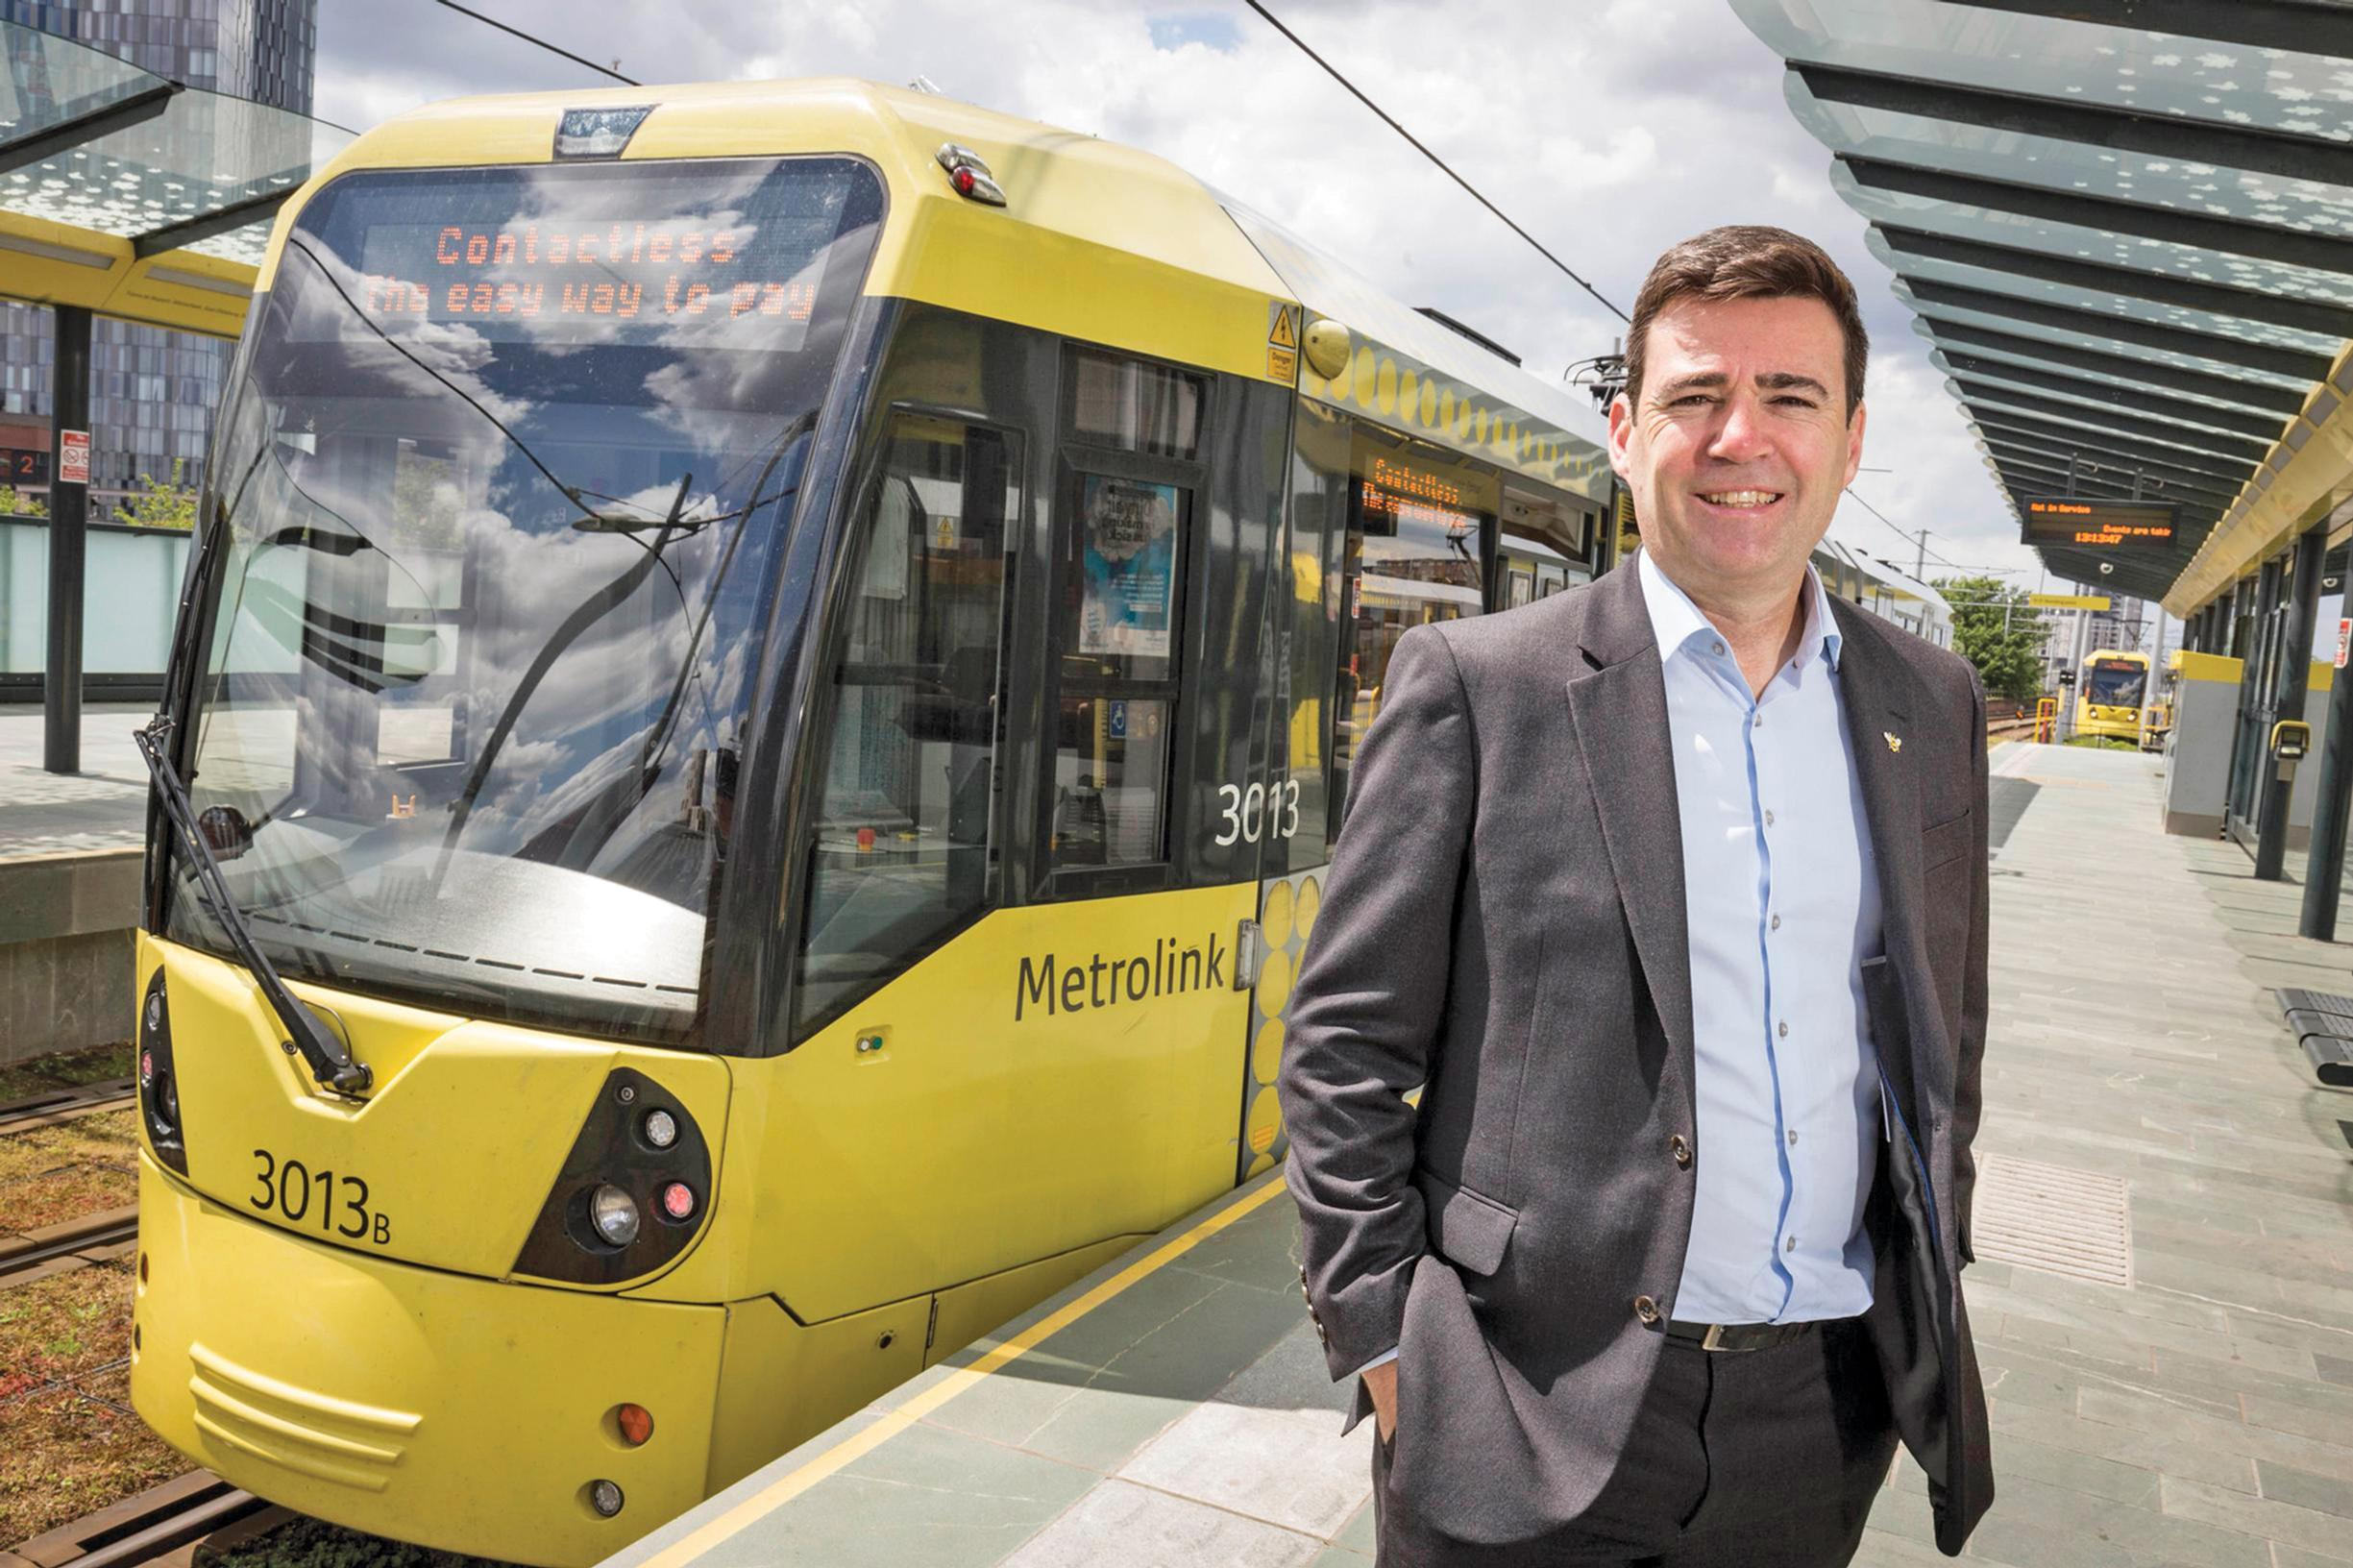 Burnham: 82 schemes estimated to cost £493m